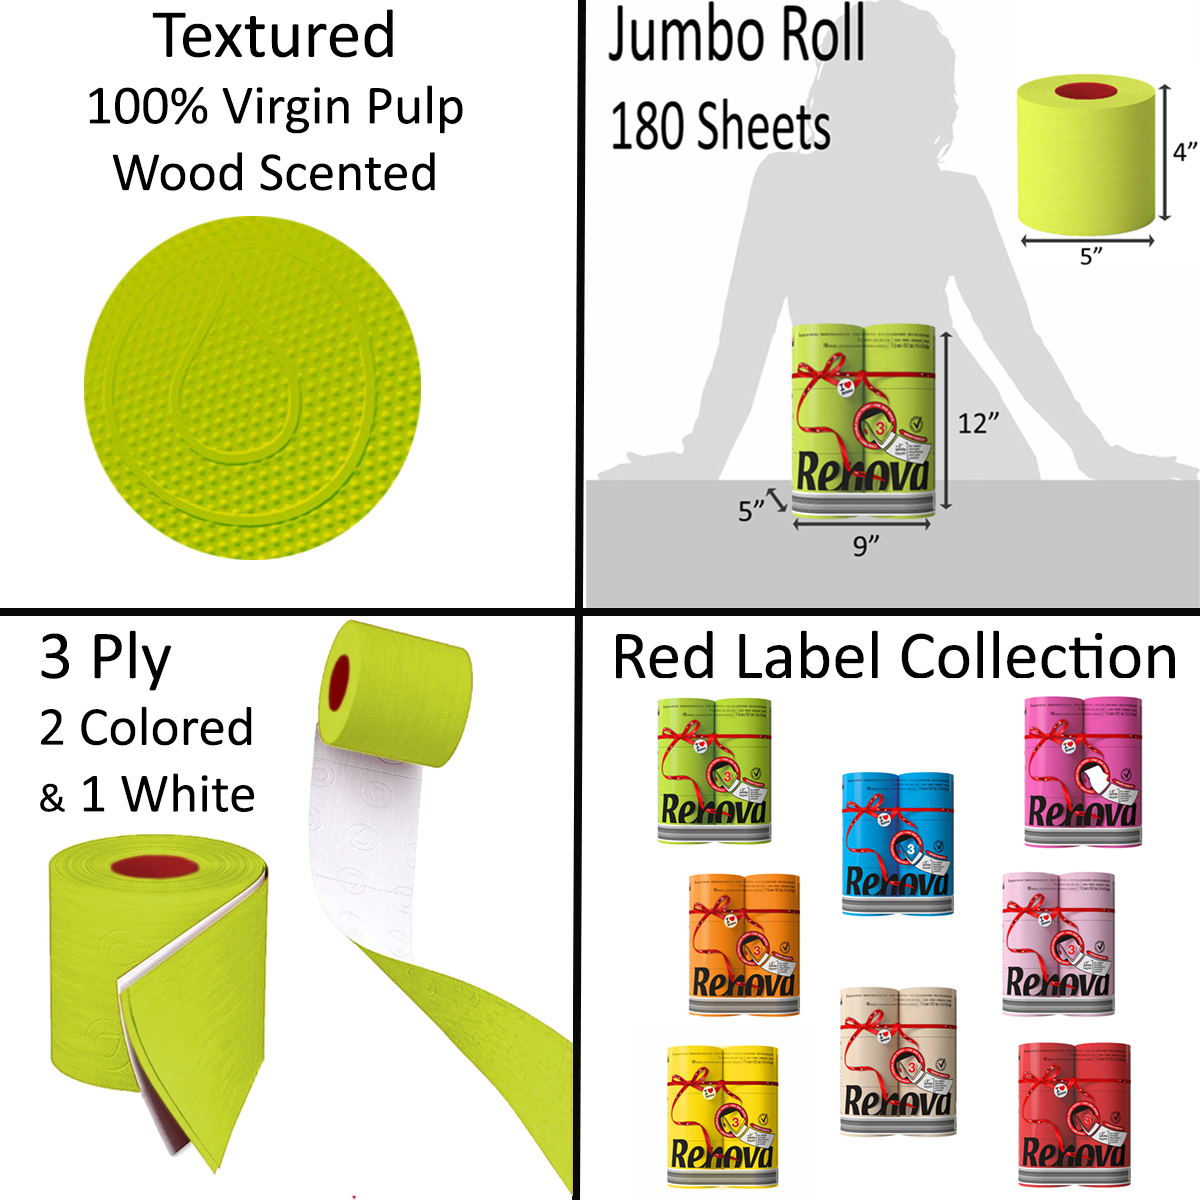 Luxury Scented Colored Toilet Paper 6 Jumbo Rolls 3-Ply-180 Sheets Box 12 packs-72R